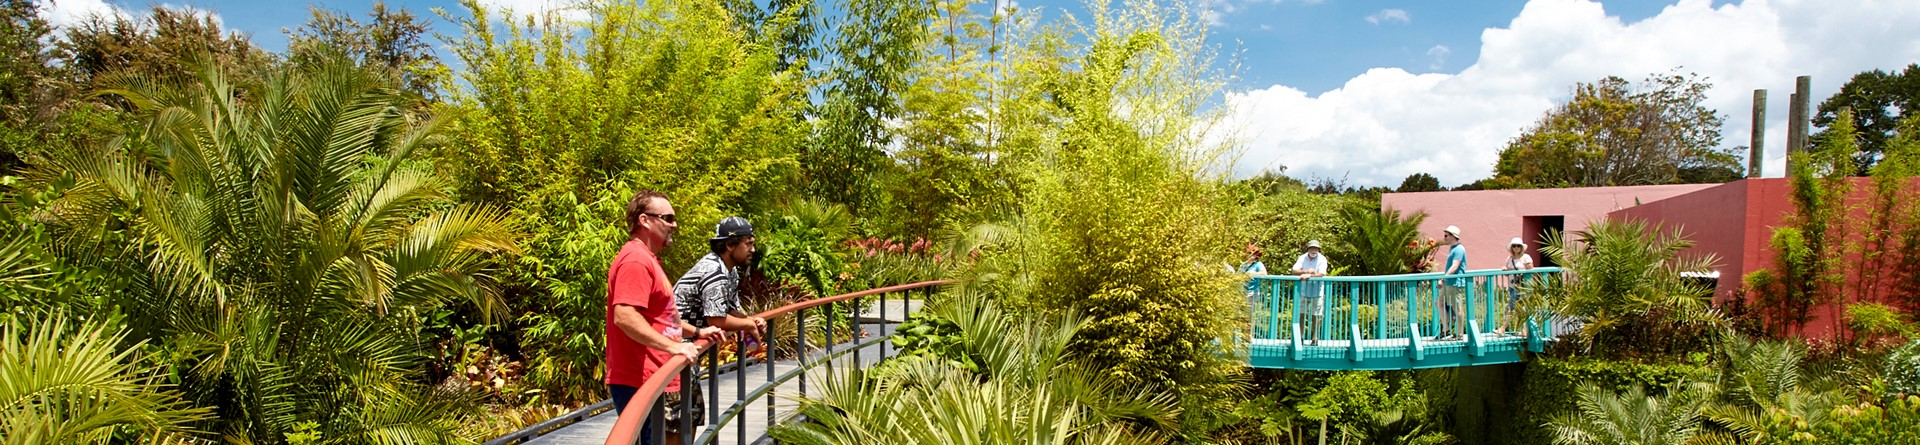 Tropical Garden at Hamilton Gardens, Hamilton, NZ.jpg